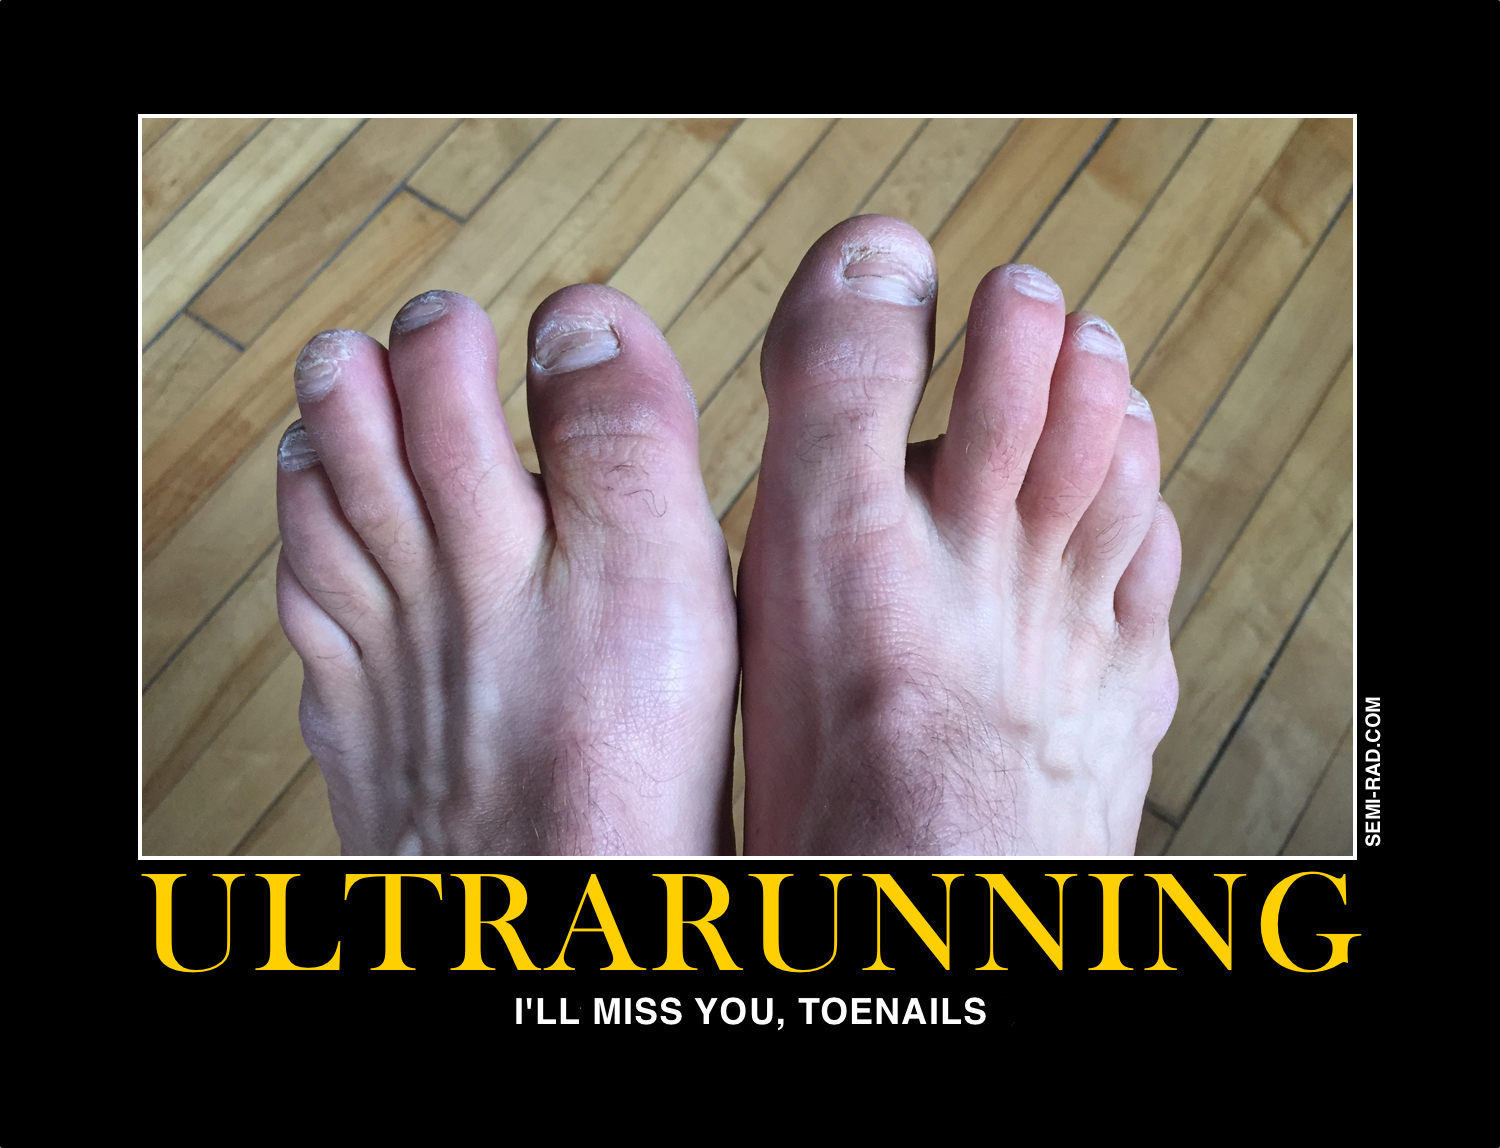 motivational posters for ultrarunners 8